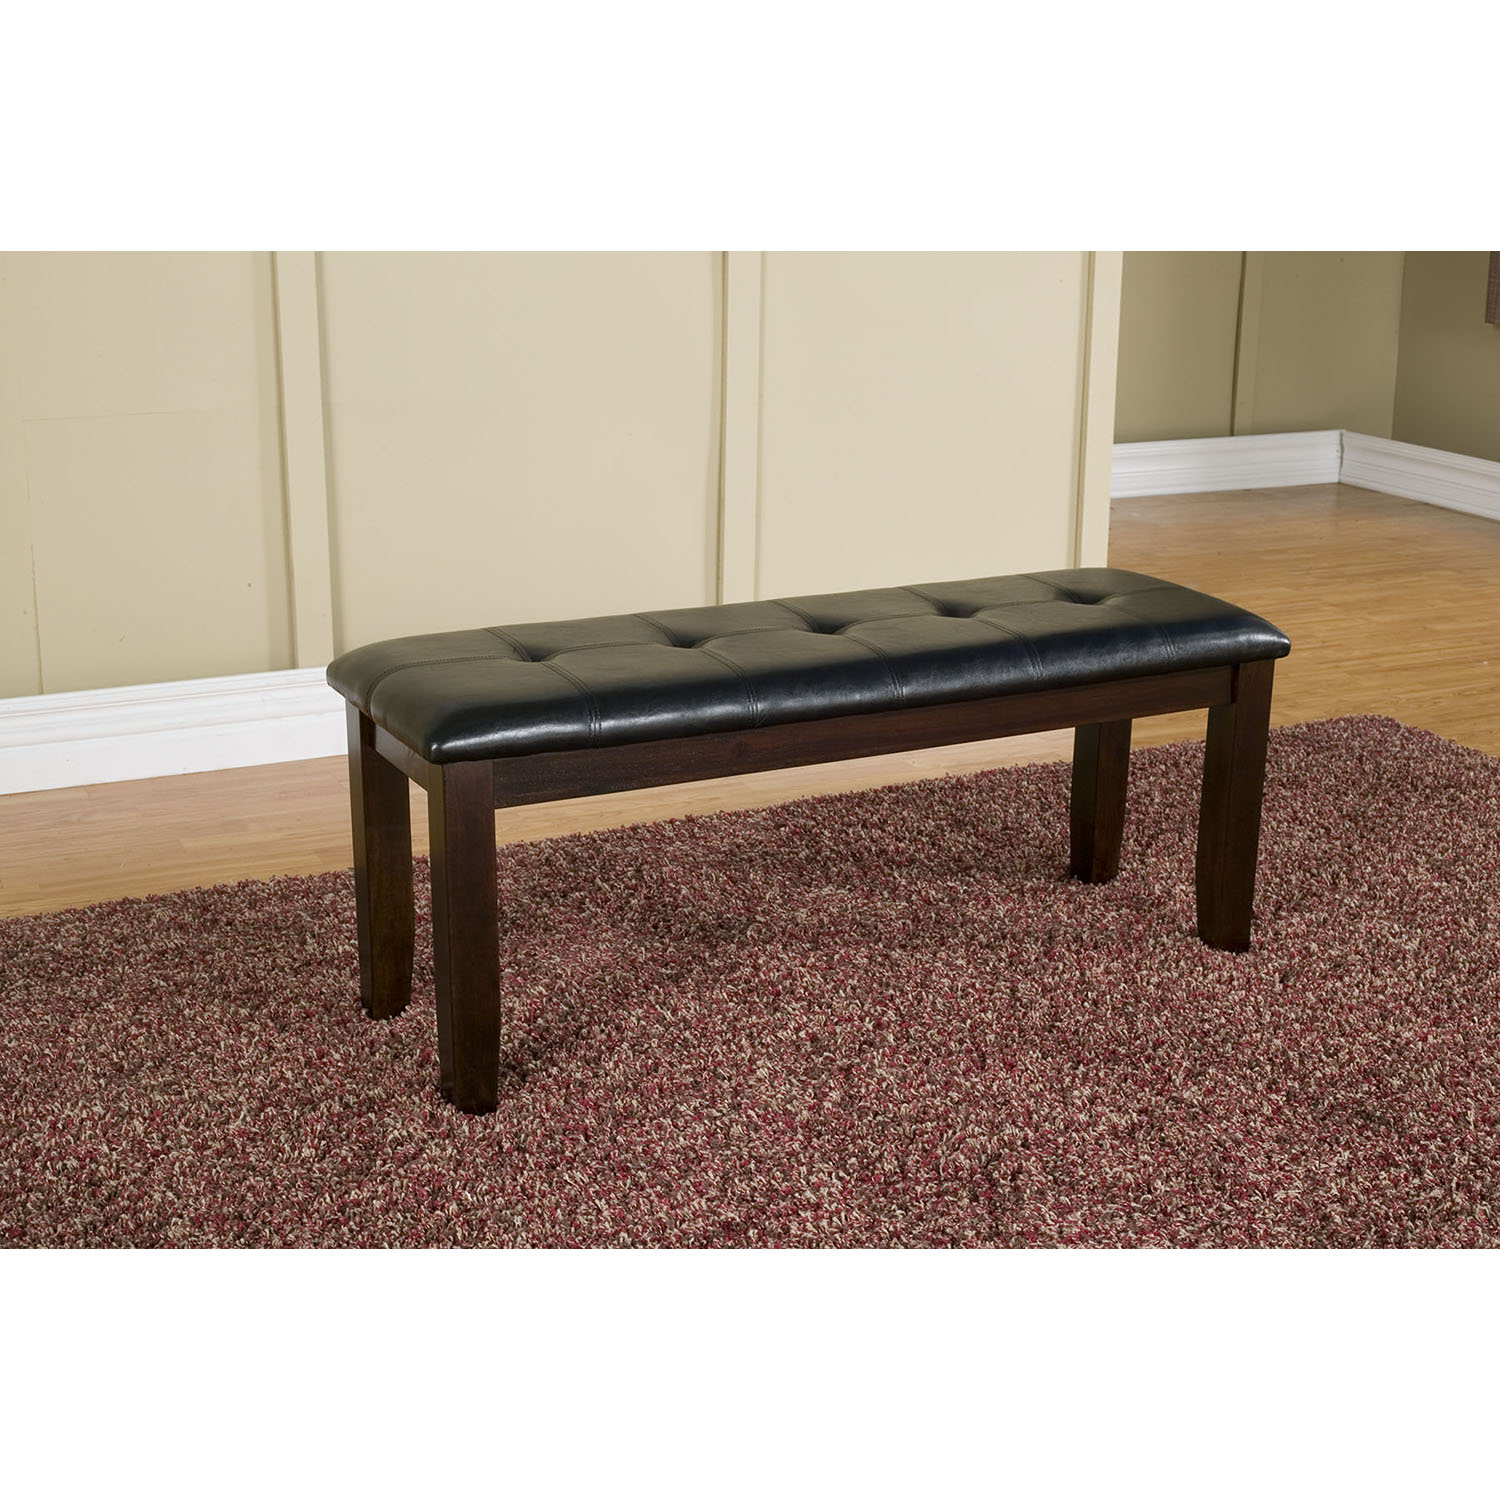 Havenhurst Bench - Merlot Finish, Black Faux Leather Cushion